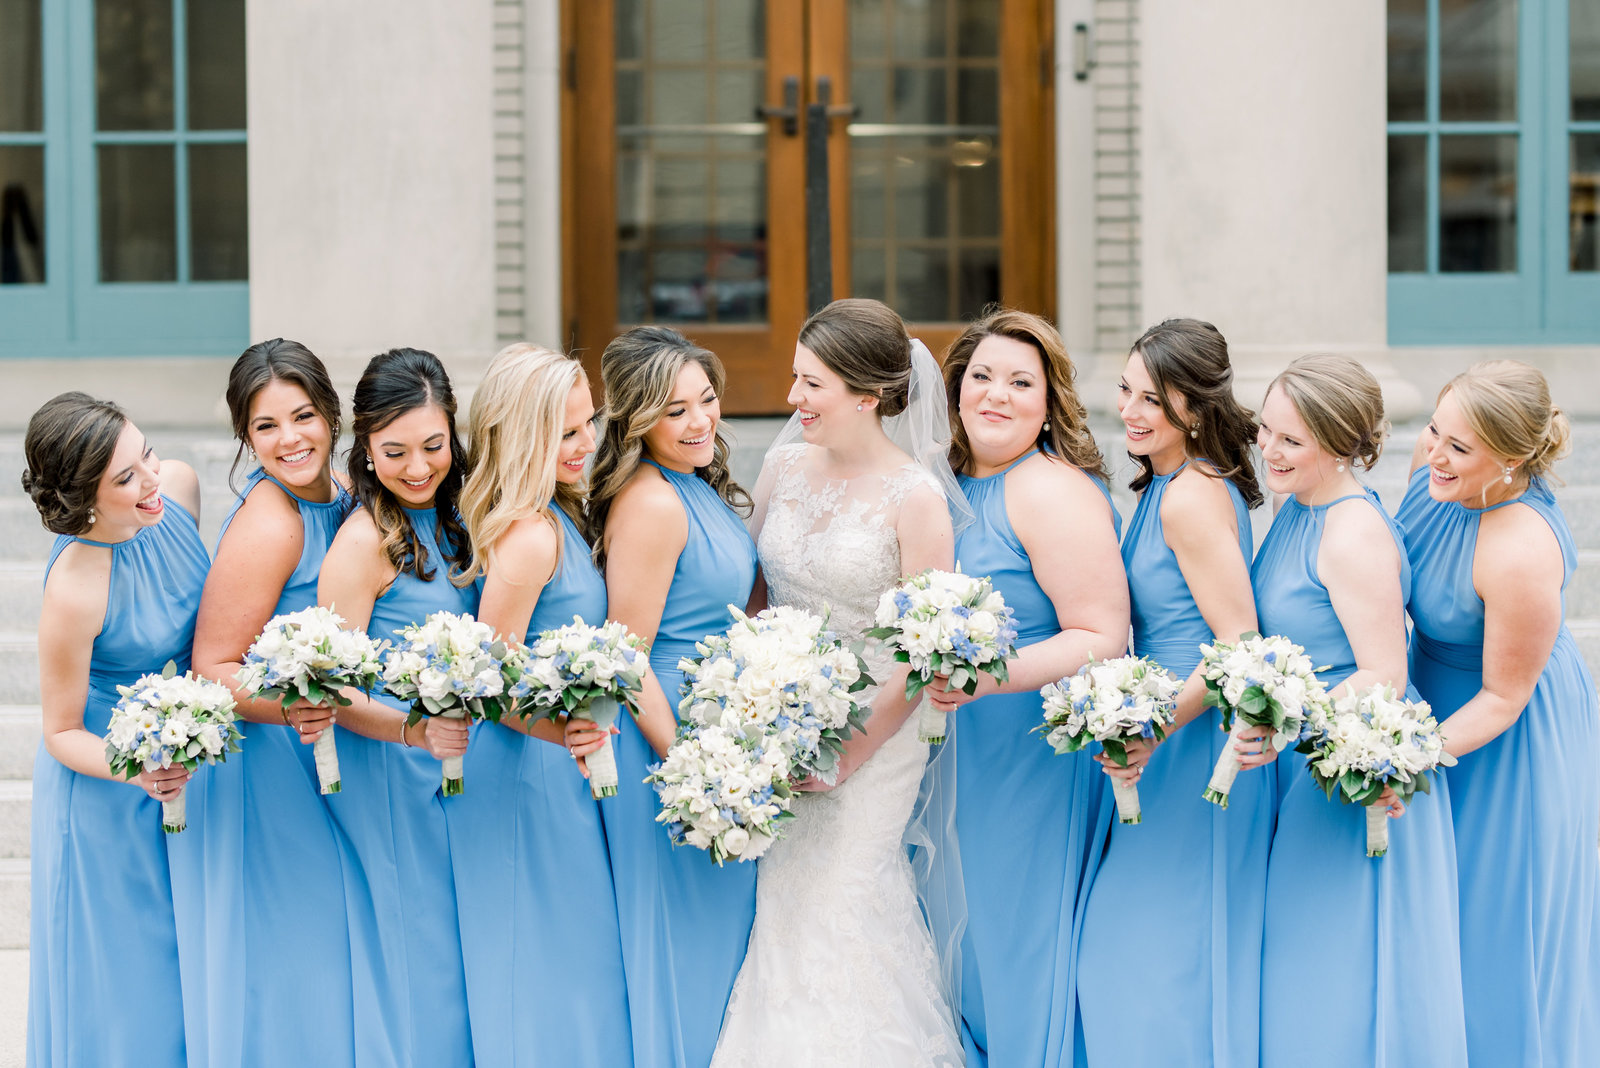 historic-post-office-hampton-virginia-wedding-southern-blue-bridesmaids-dresses-photo485